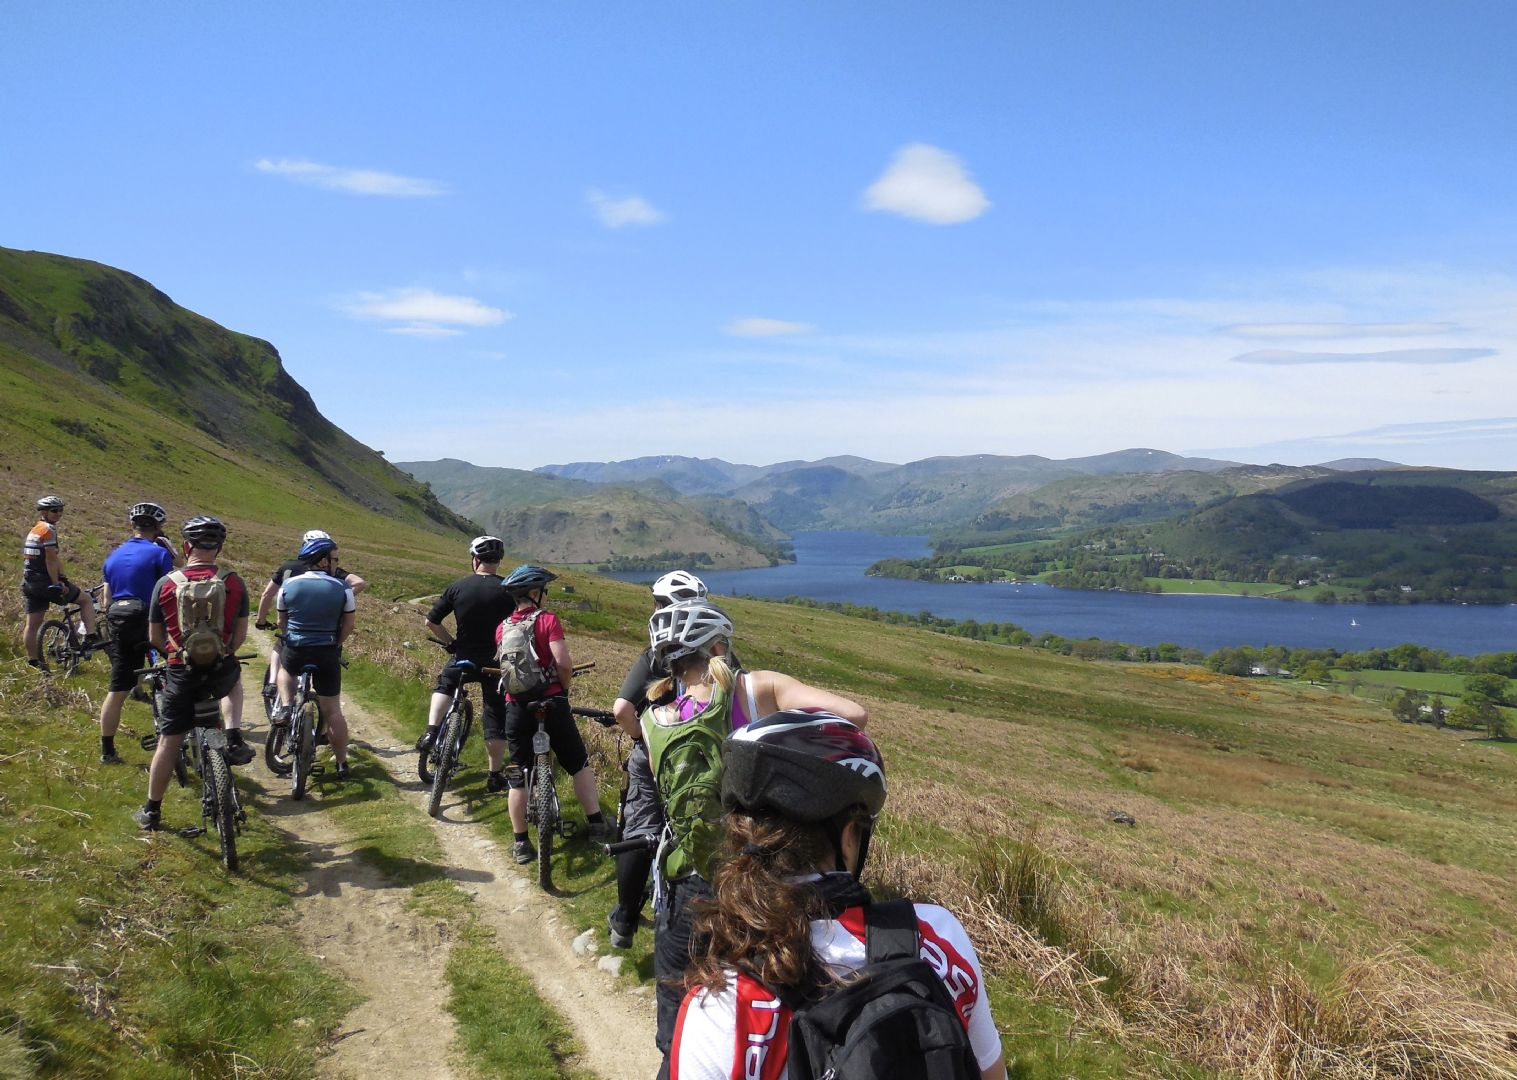 _Customer.53611.16233.jpg - UK - Lake District - Ullswater - Guided Mountain Bike Weekend - Mountain Biking